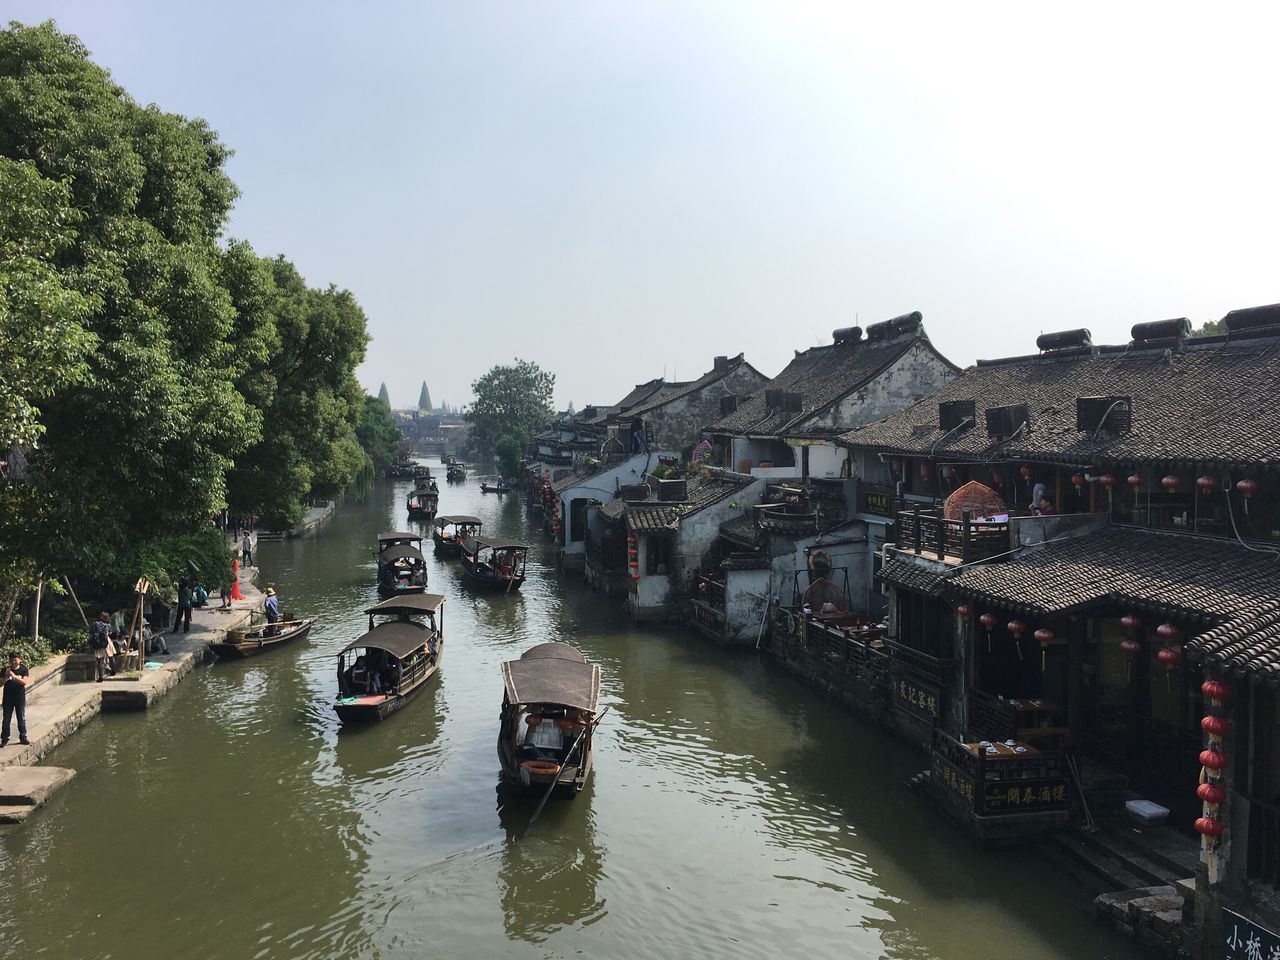 China Watertown Xitang Fresh On Eyeem  Nautical Vessel Transportation Architecture Boat Building Exterior Built Structure Water Tree Moored Mode Of Transport Canal Waterfront High Angle View Clear Sky River Day Diminishing Perspective Vanishing Point Sky Riverbank